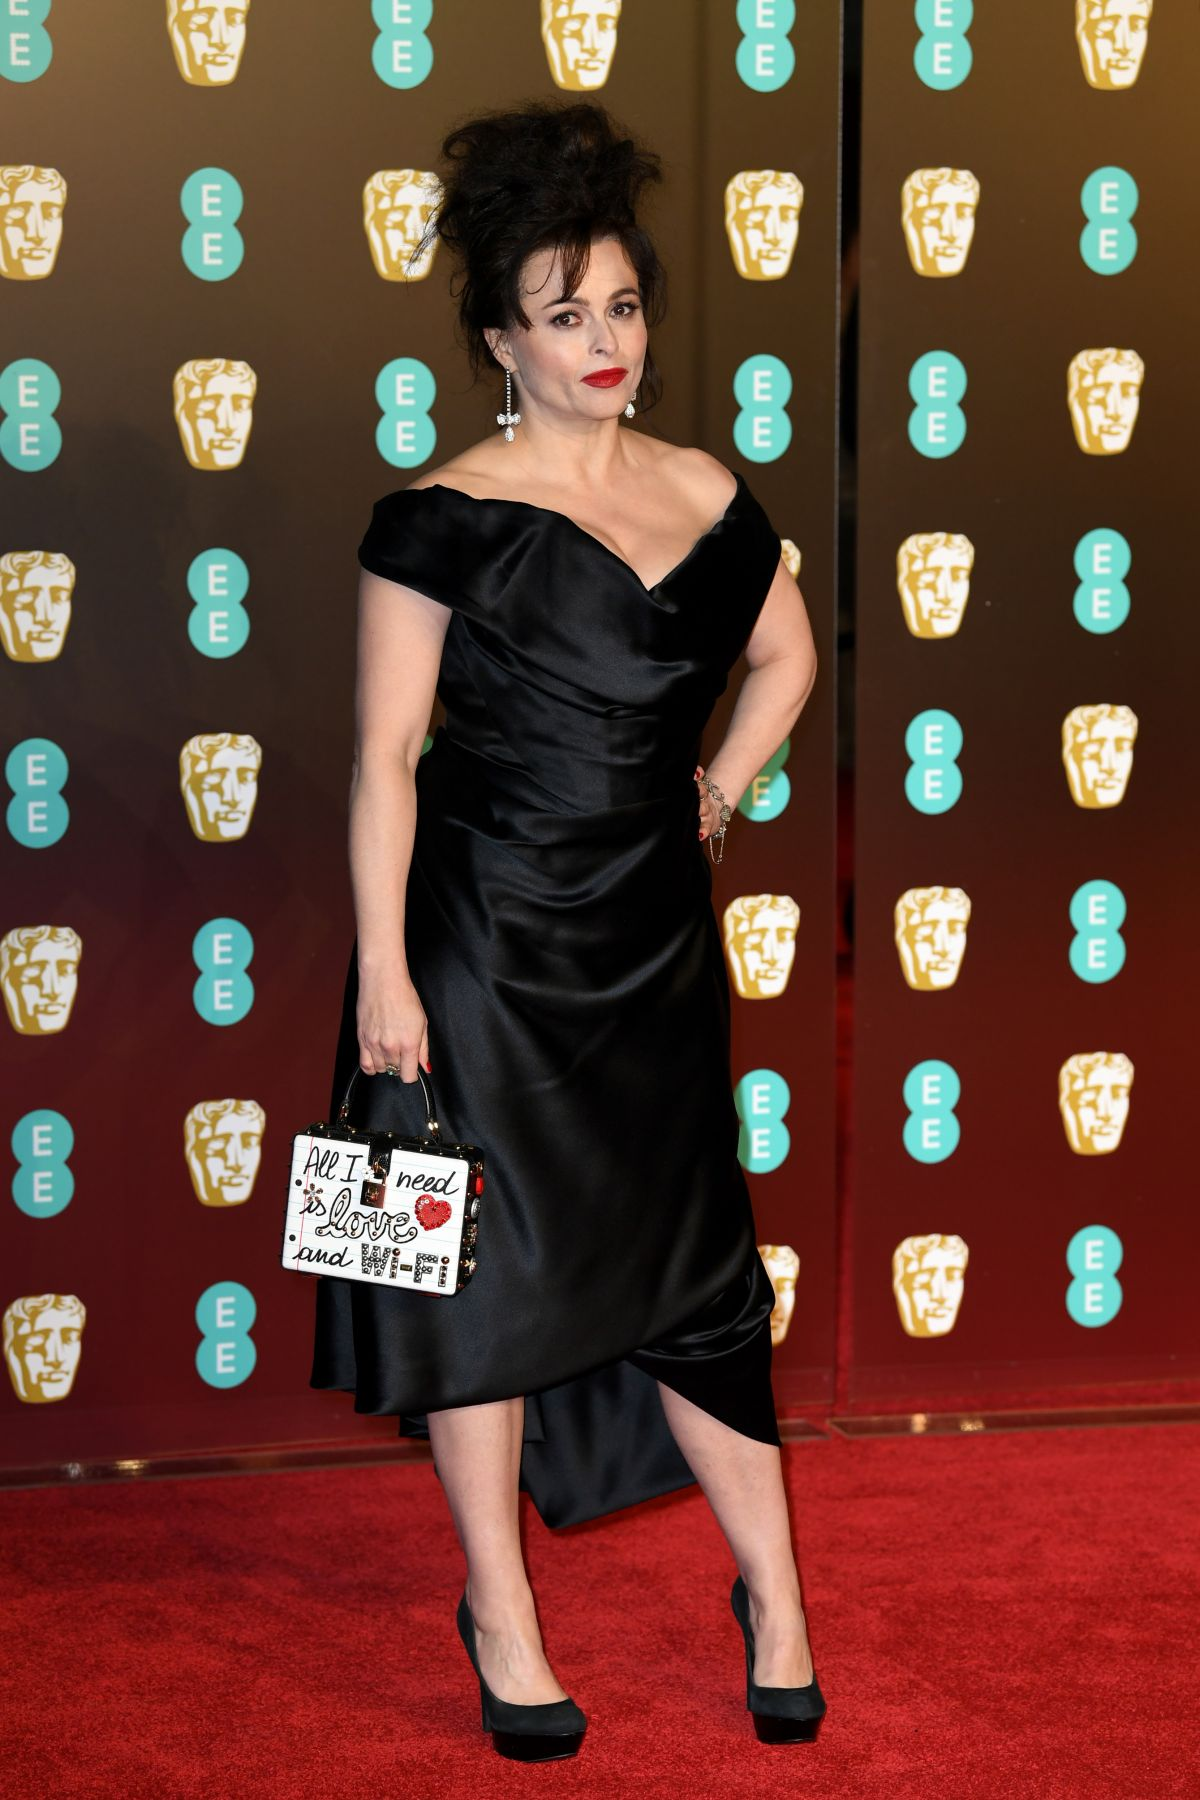 Helena Bonham Carter At Bafta Film Awards 2018 In London